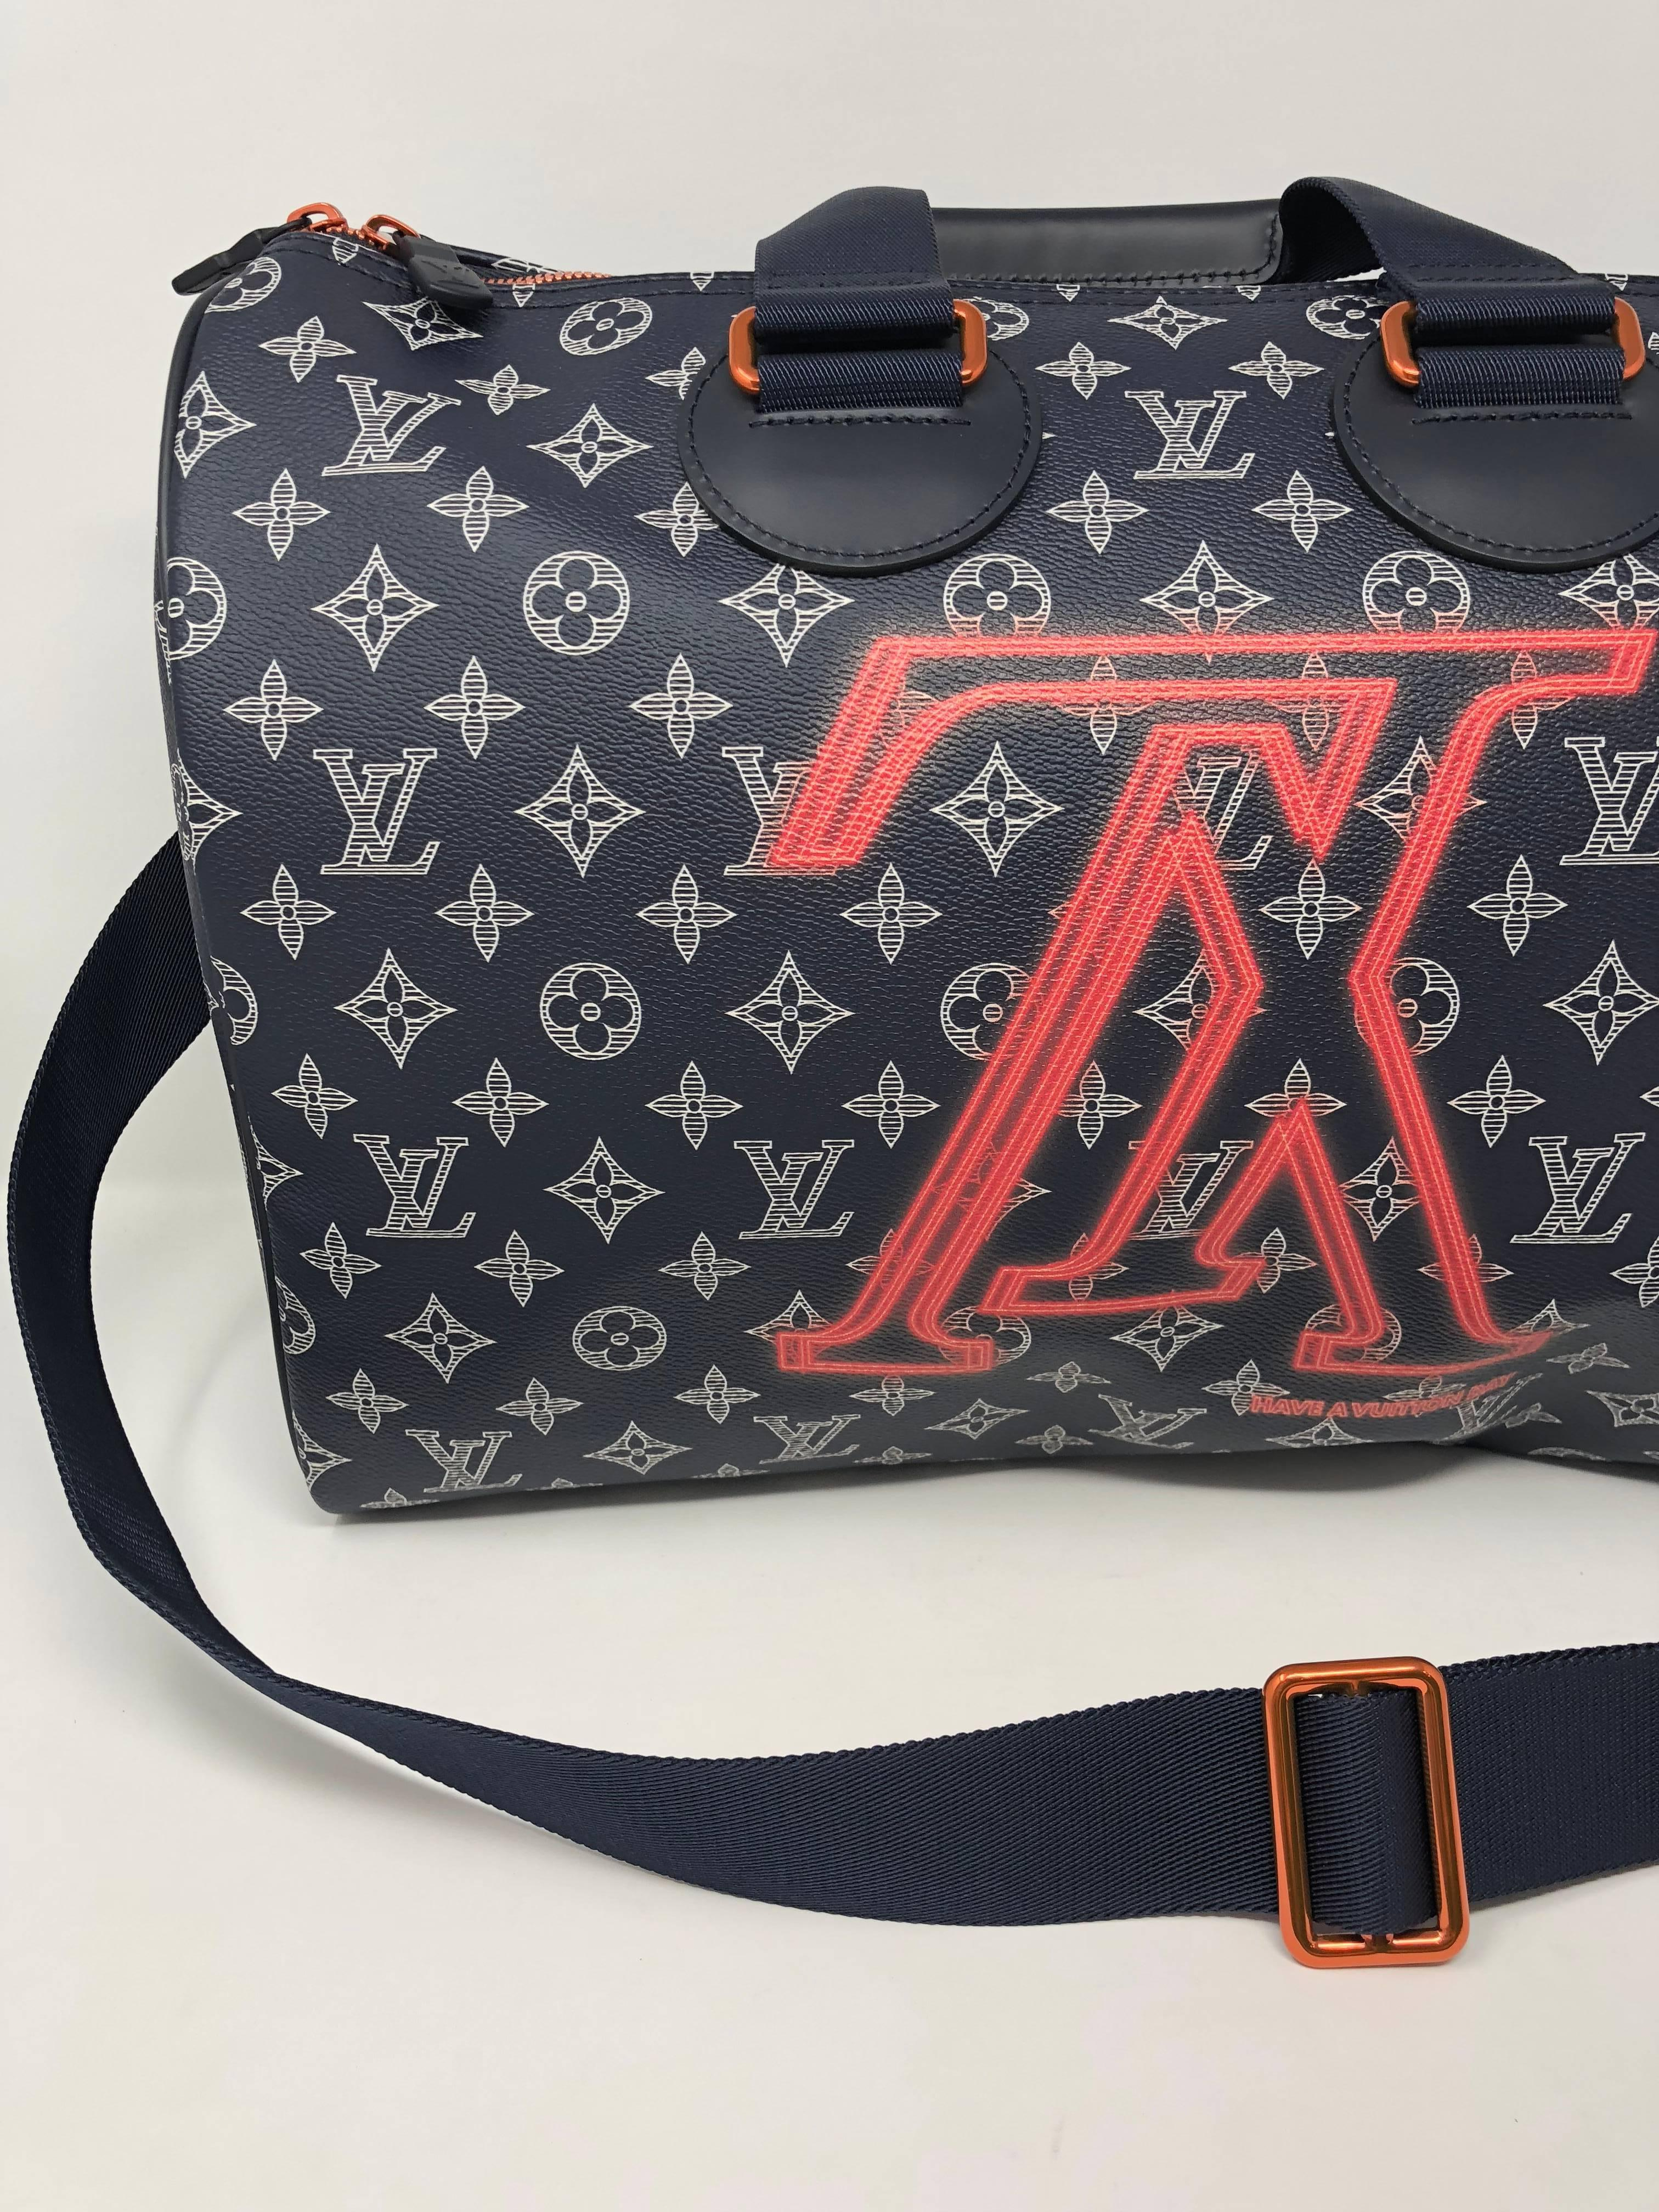 92213e38f5cb Louis Vuitton Speedy 40 Upside Down Bandouliere at 1stdibs